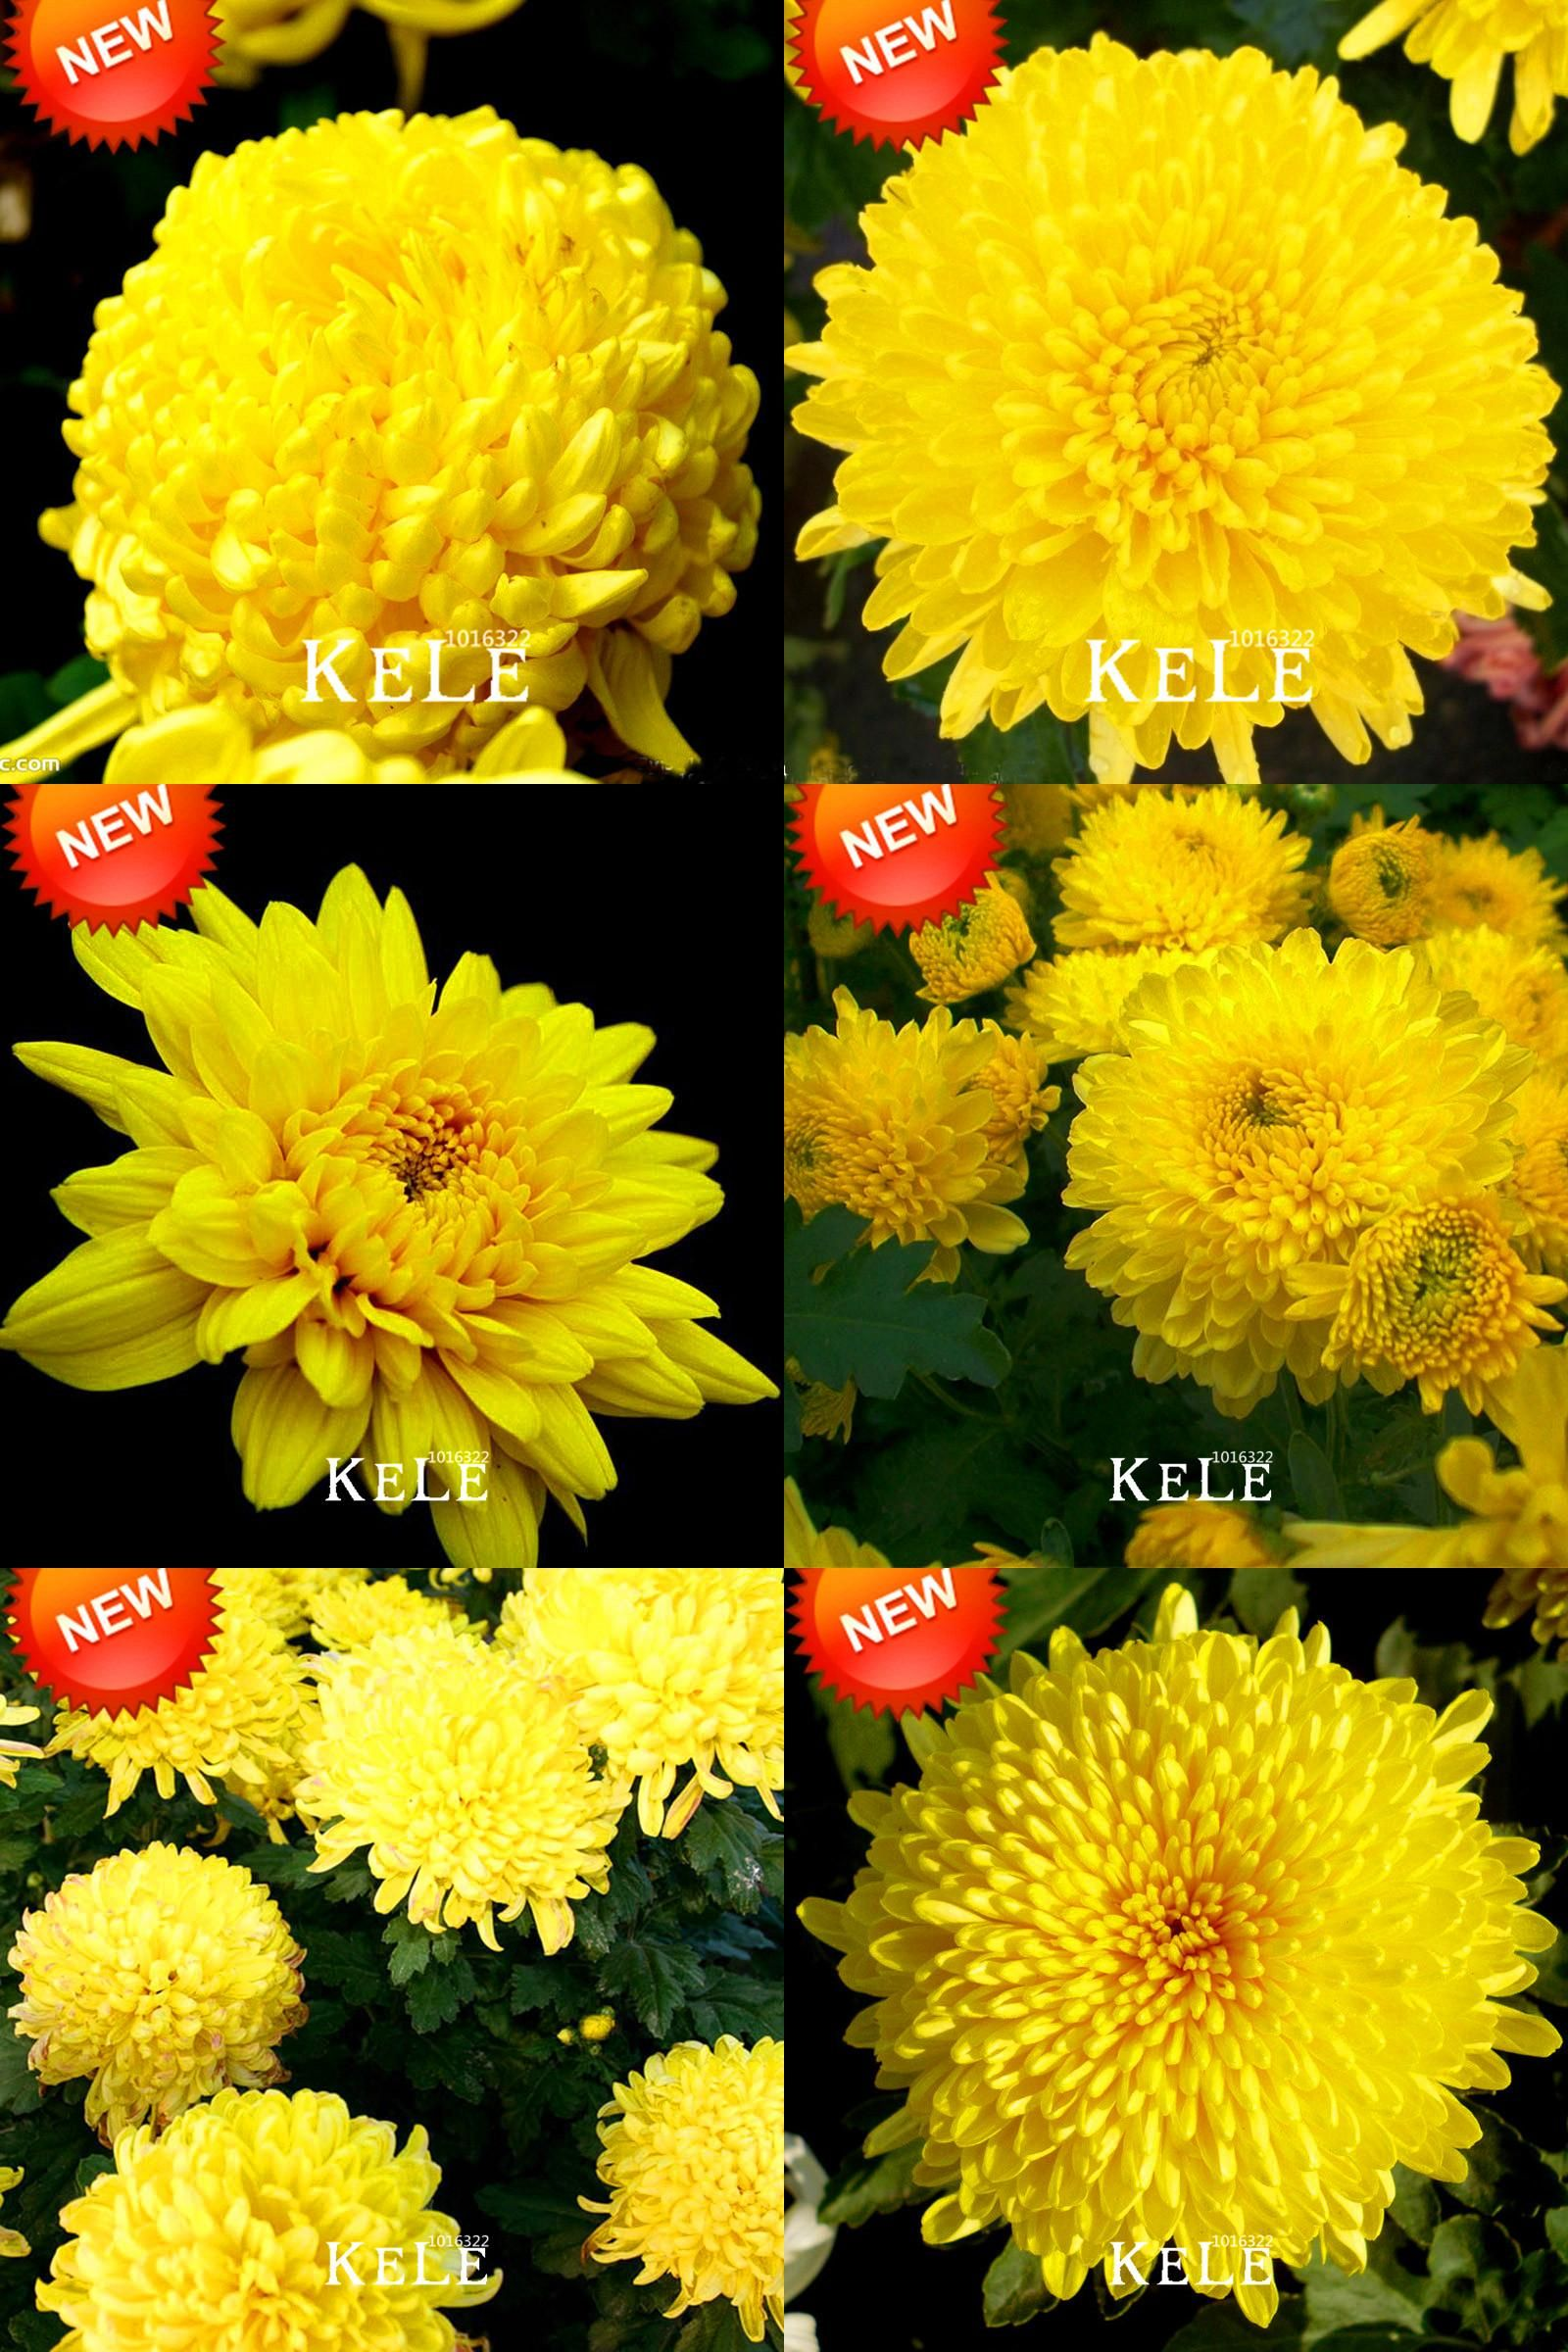 Visit to buy new seeds potted flower yellow chrysanthemum